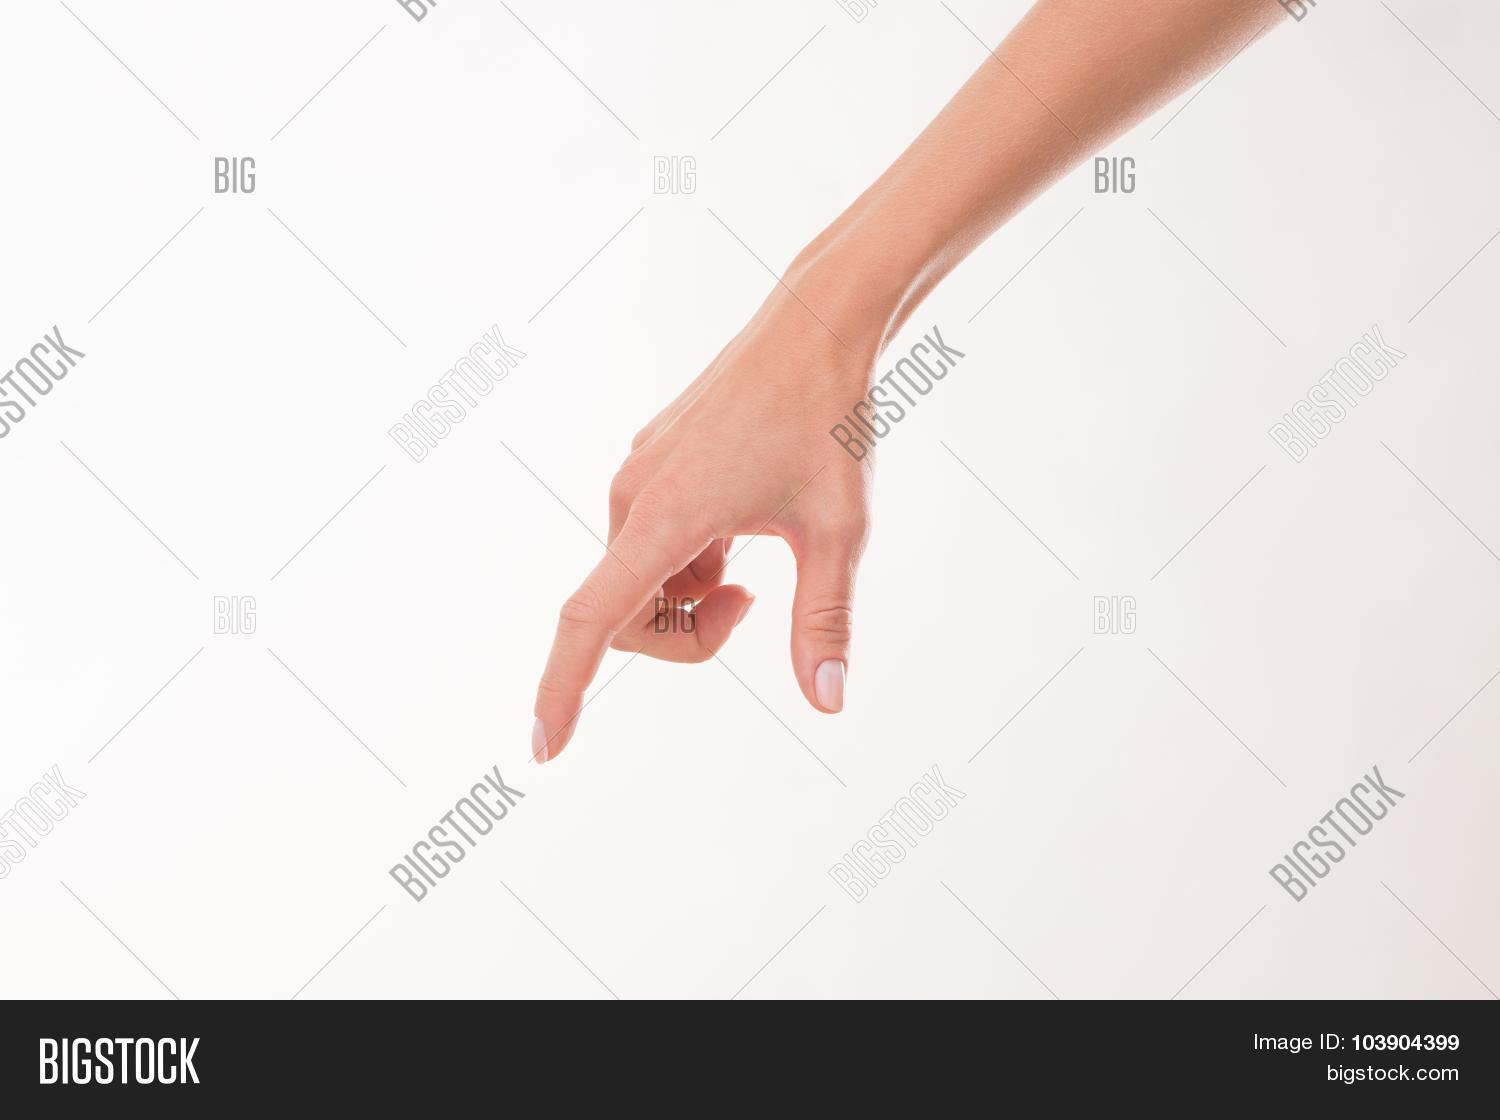 d5cd9b97ef3b0 Two woman's fingers holding something over white background. Woman's hand  showing its skincare.